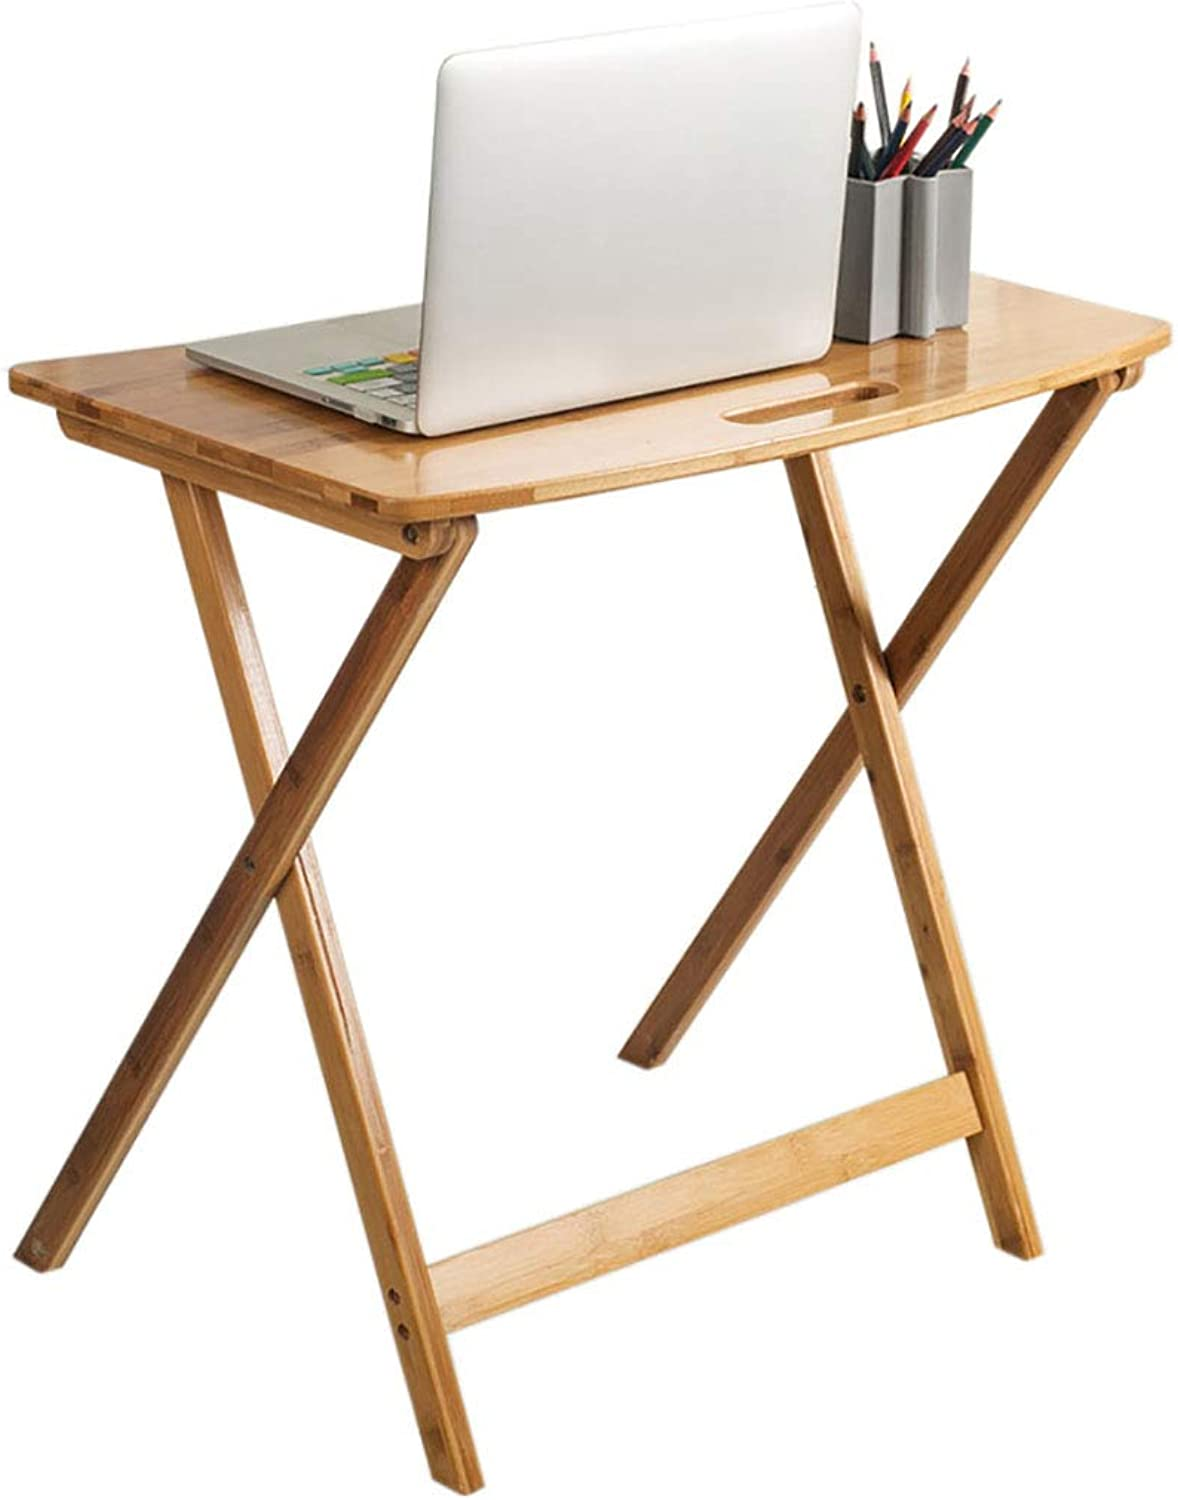 Bedside Laptop End Table Simple Foldable Bamboo Lightweight and Portable for Small Space